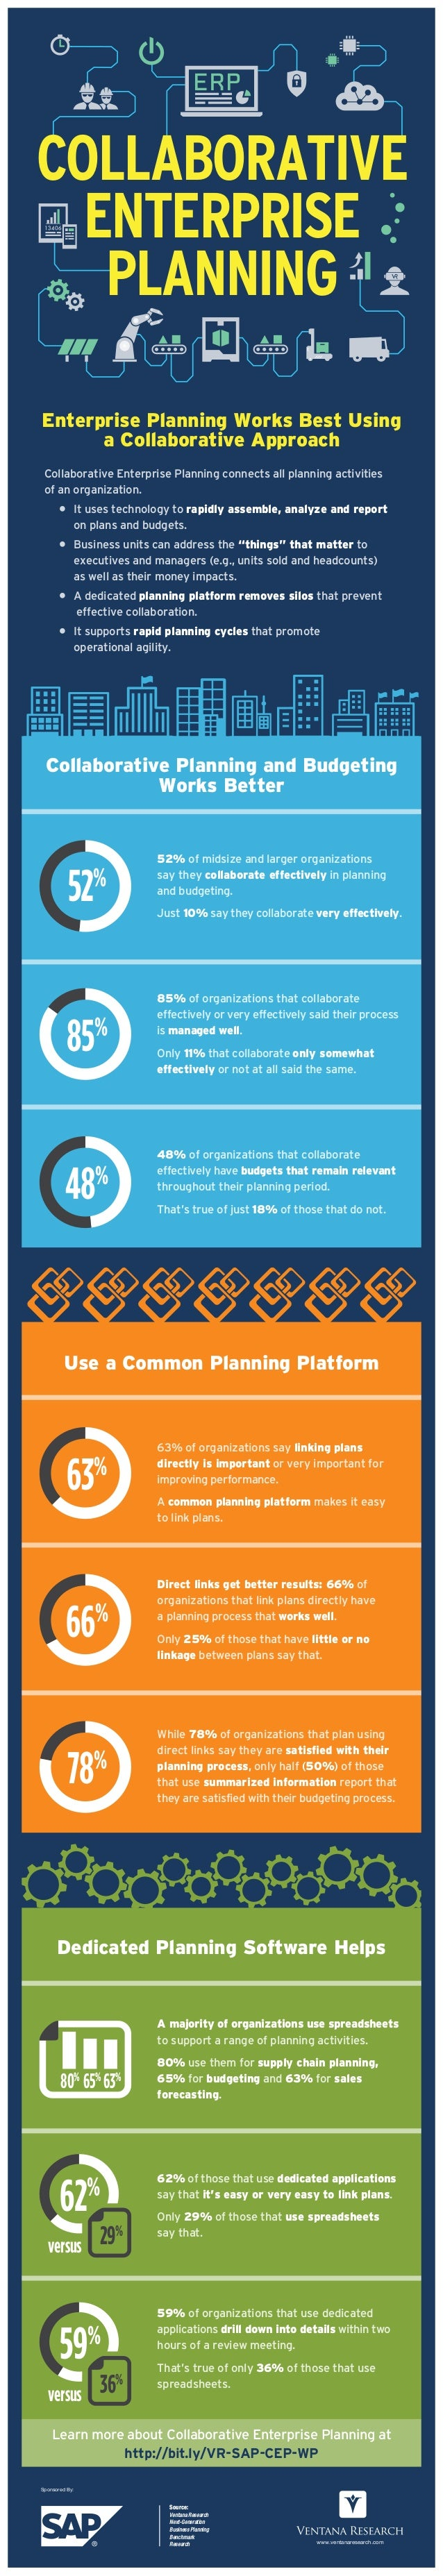 52% of midsize and larger organizations say they collaborate effectively in planning and budgeting. Just 10% say they coll...